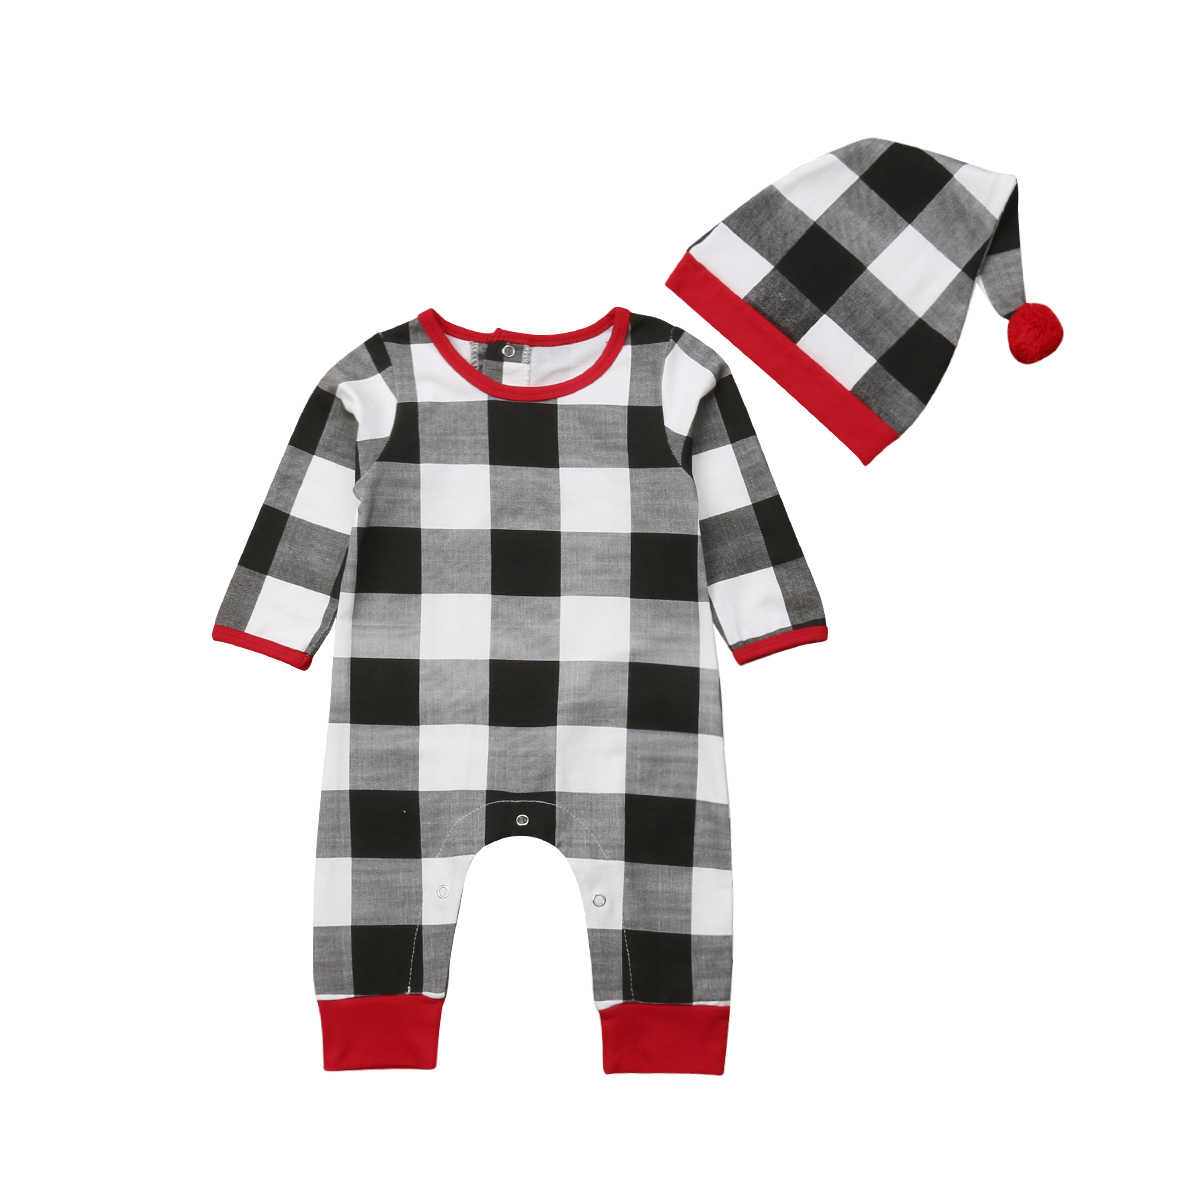 675279557 2018 Christmas Buffalo Toddler Infant Kids Baby Boy Girl Checked Romper  Jumpsuit Long Sleeve Outfits Plaid